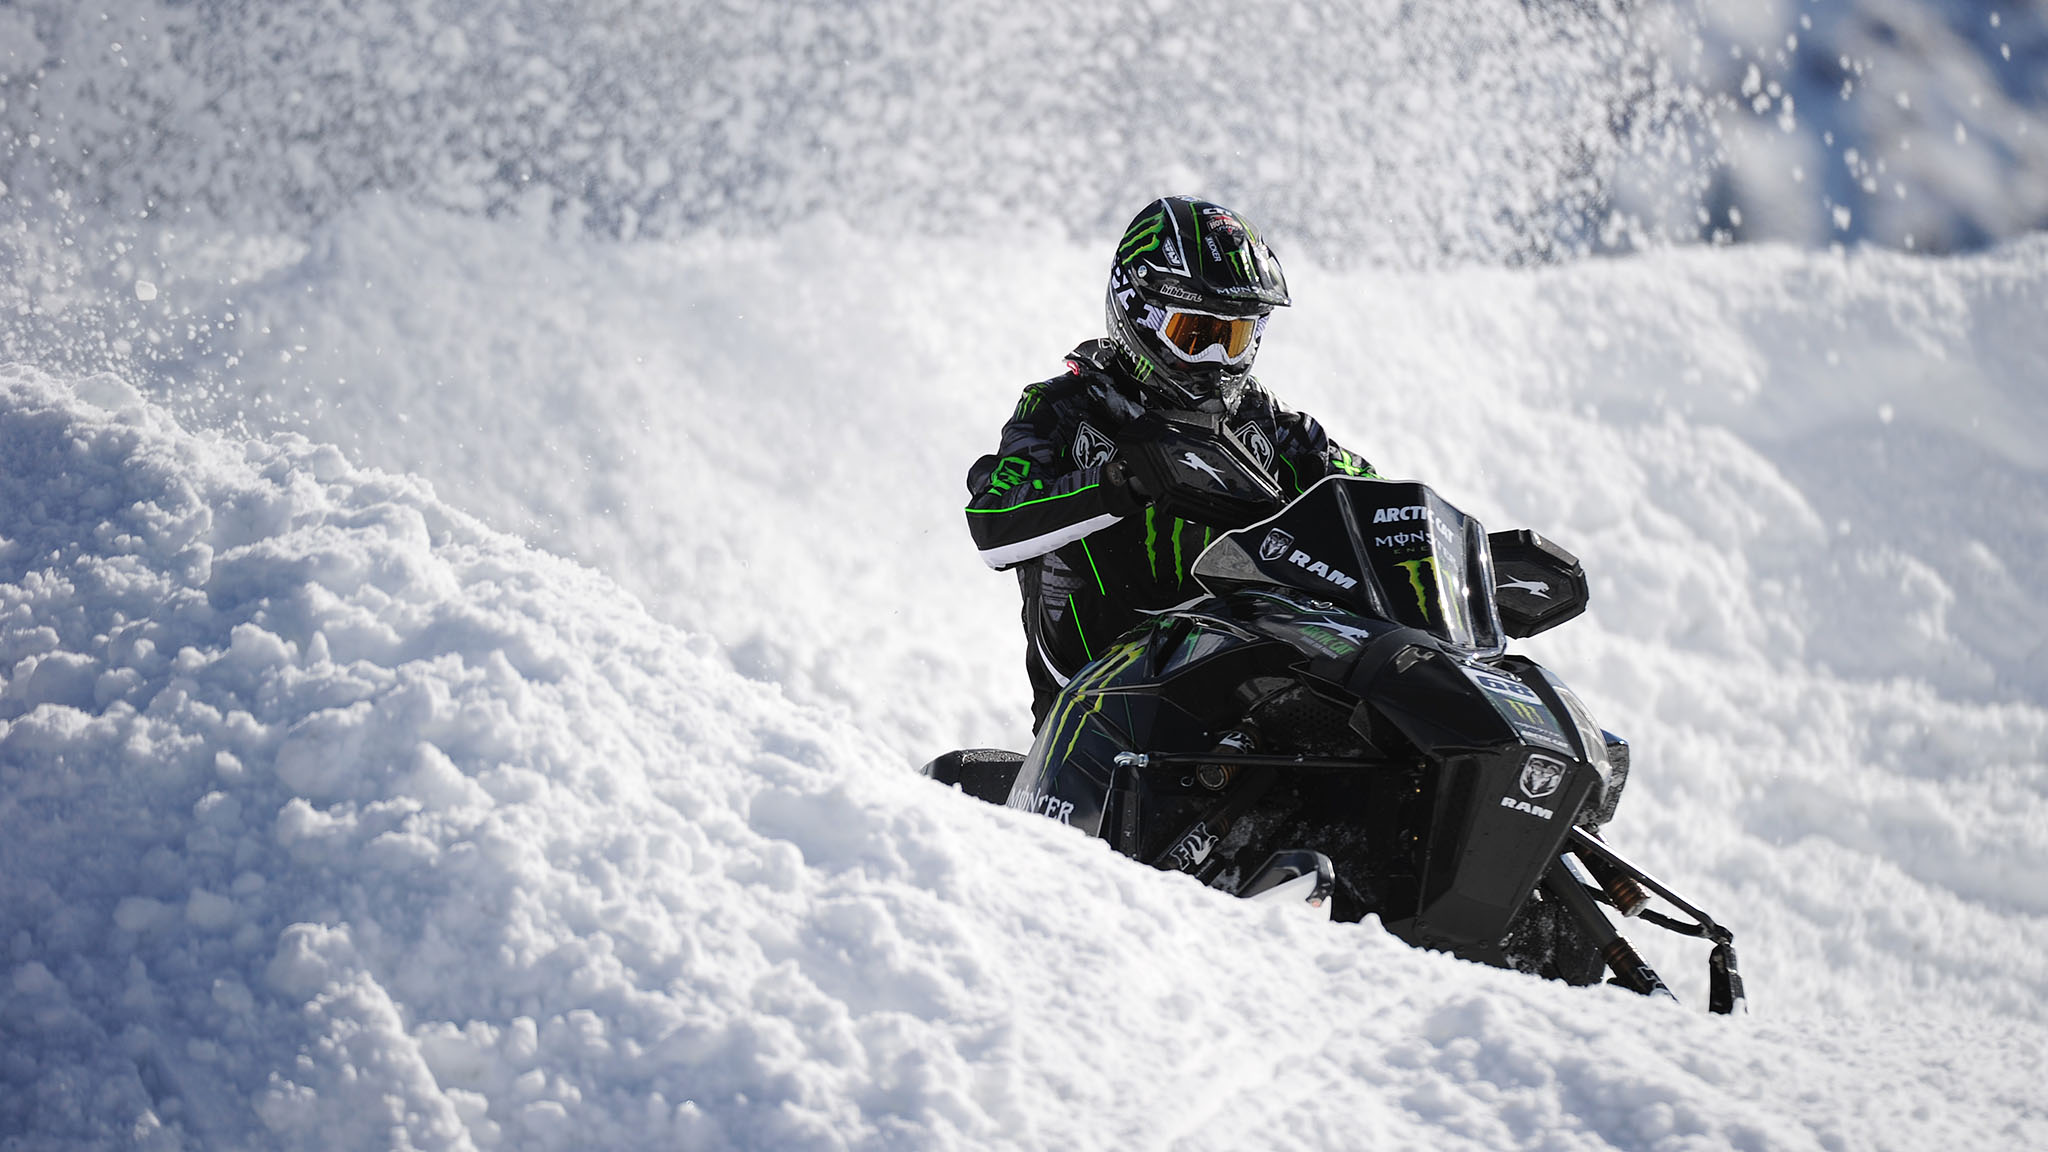 Tucker Hibbert continued his reign as the top SnoCross rider, winning his sixth straight gold Sunday afternoon.